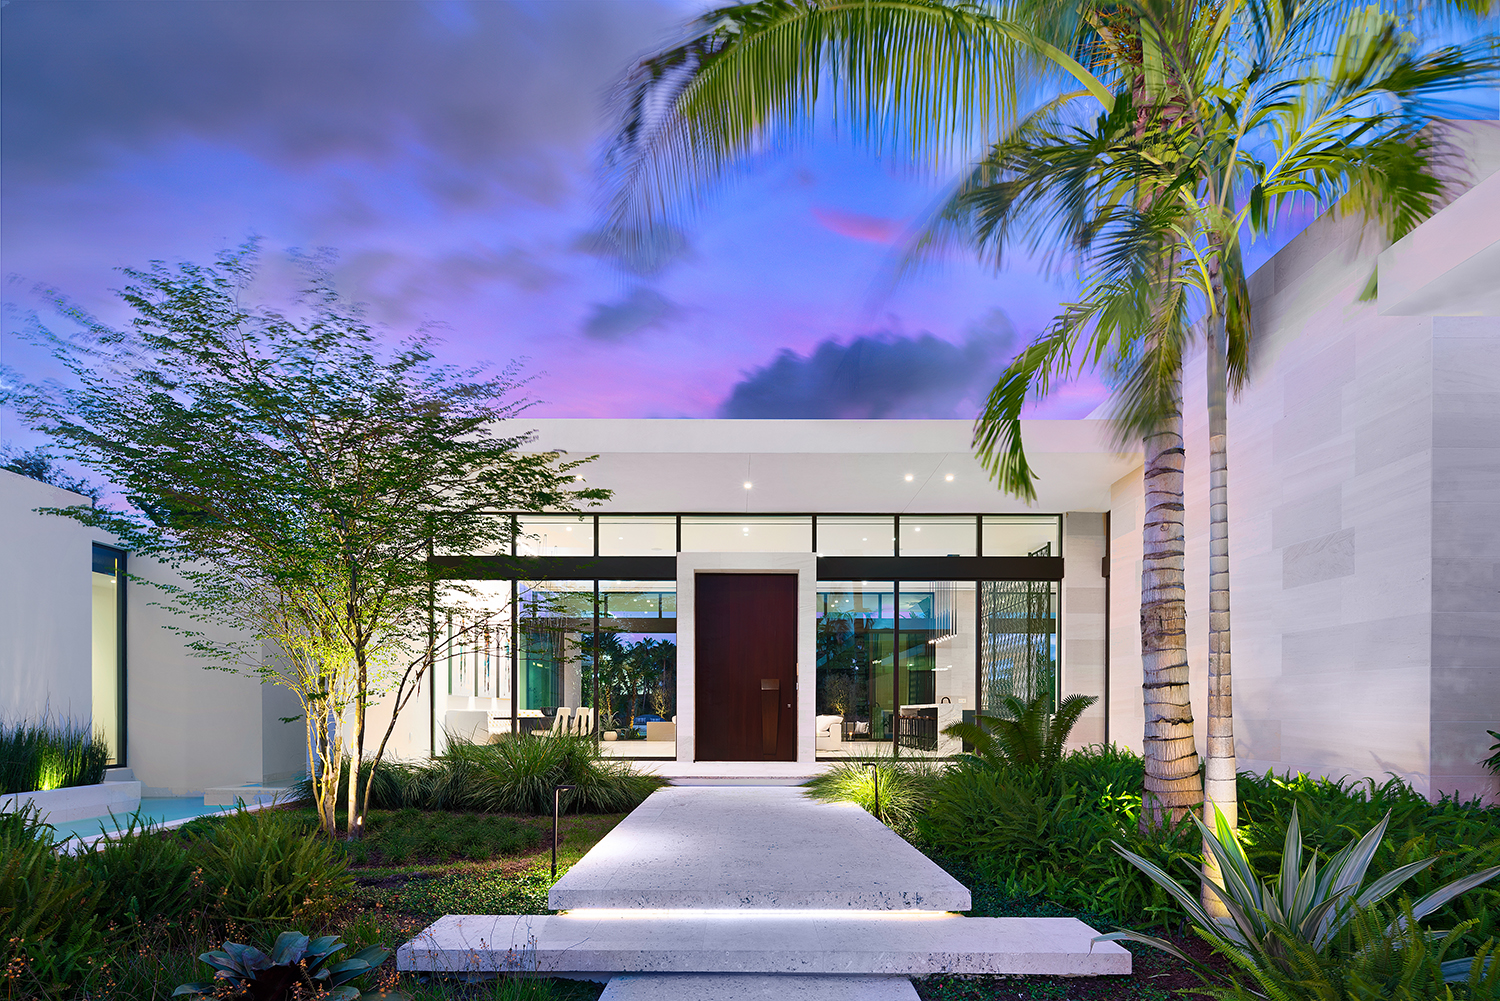 Expect to see more tropical modernism in South Florida suburbs.